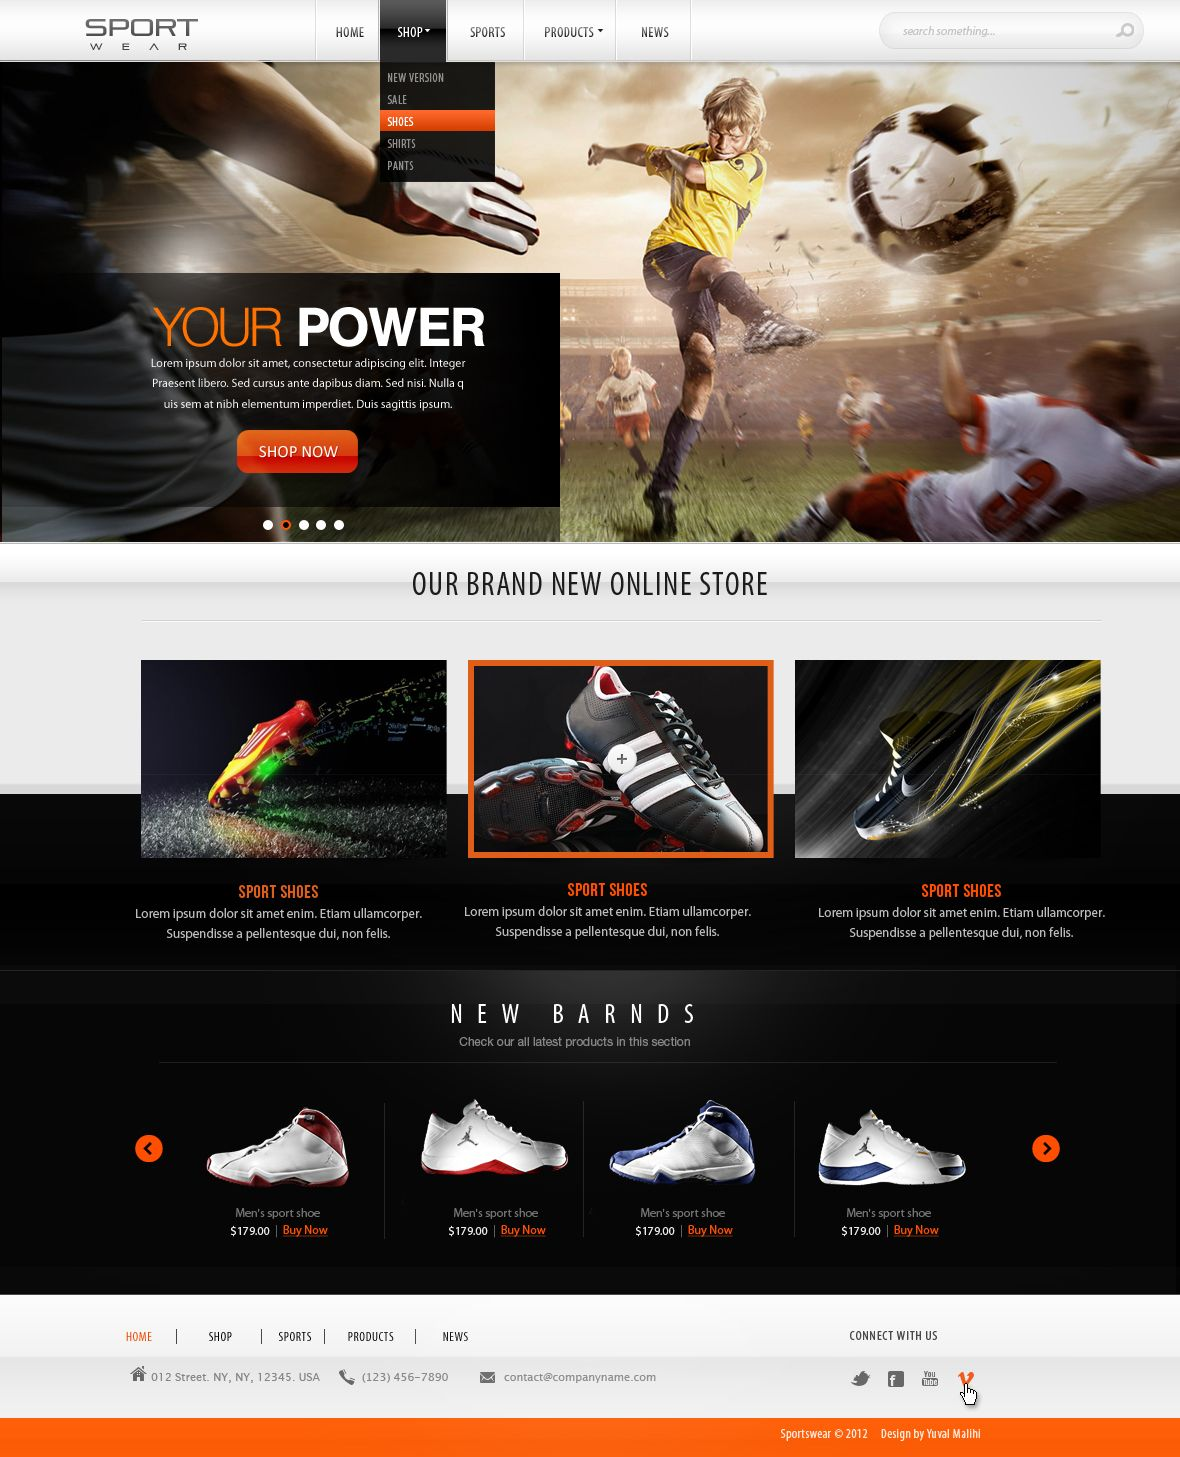 Sports website design FOR SALE by yuval10203 on